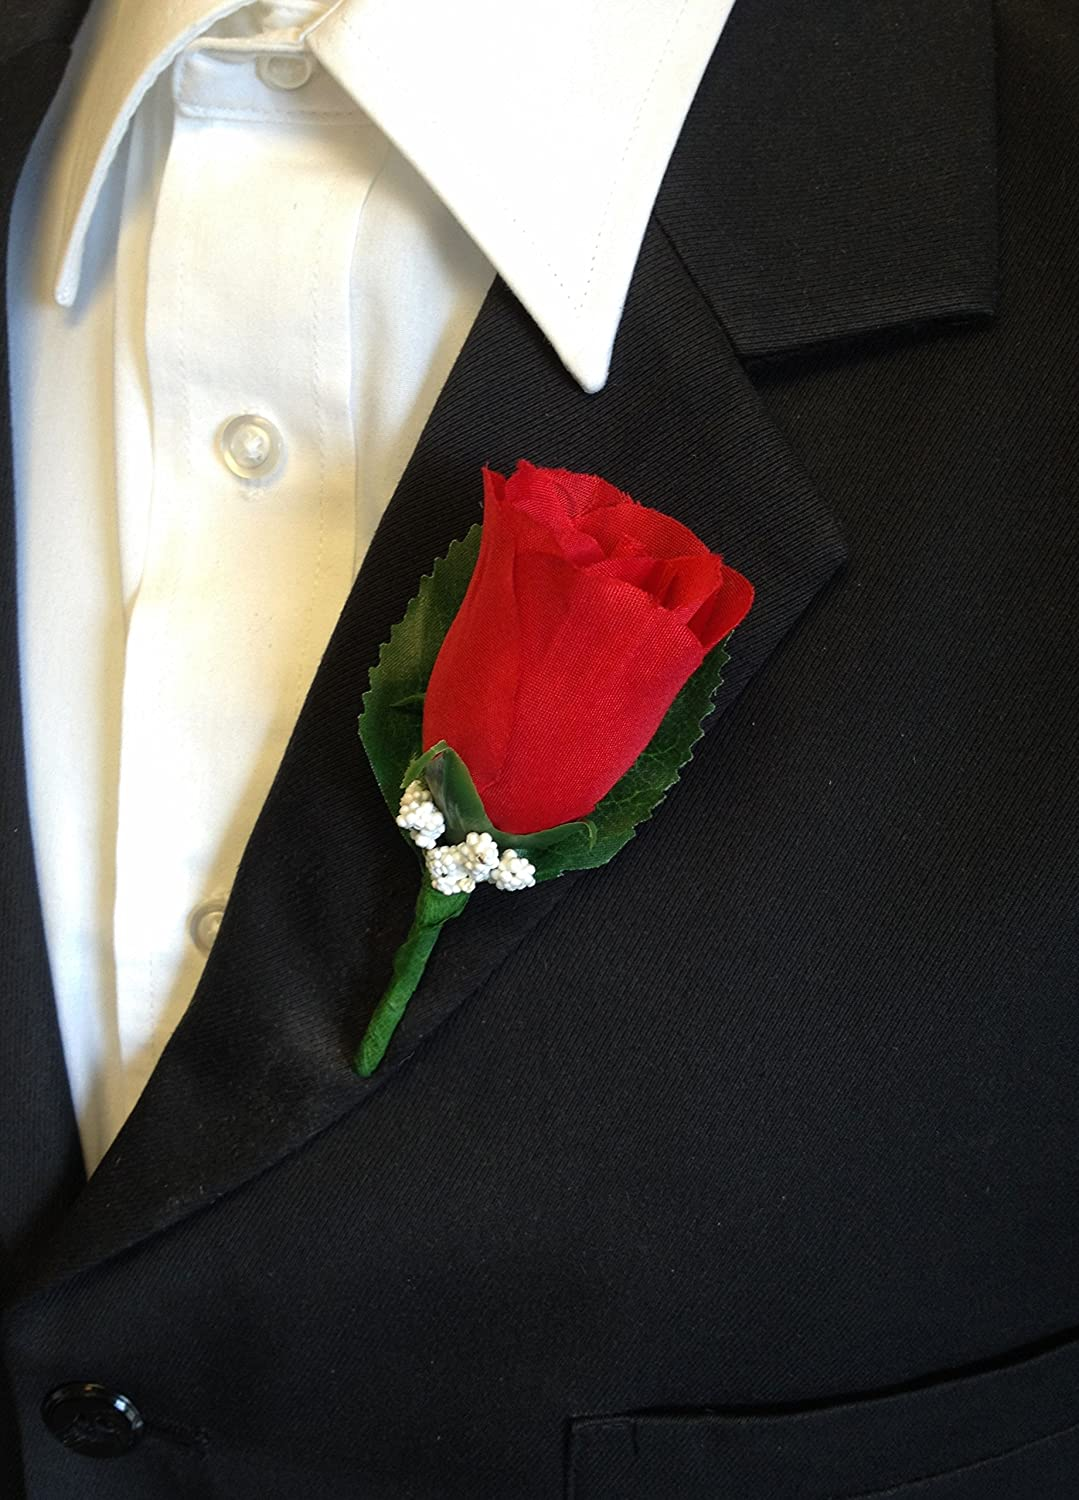 Holiday Red Rose Boutonniere with Pin for Prom Wedding Party